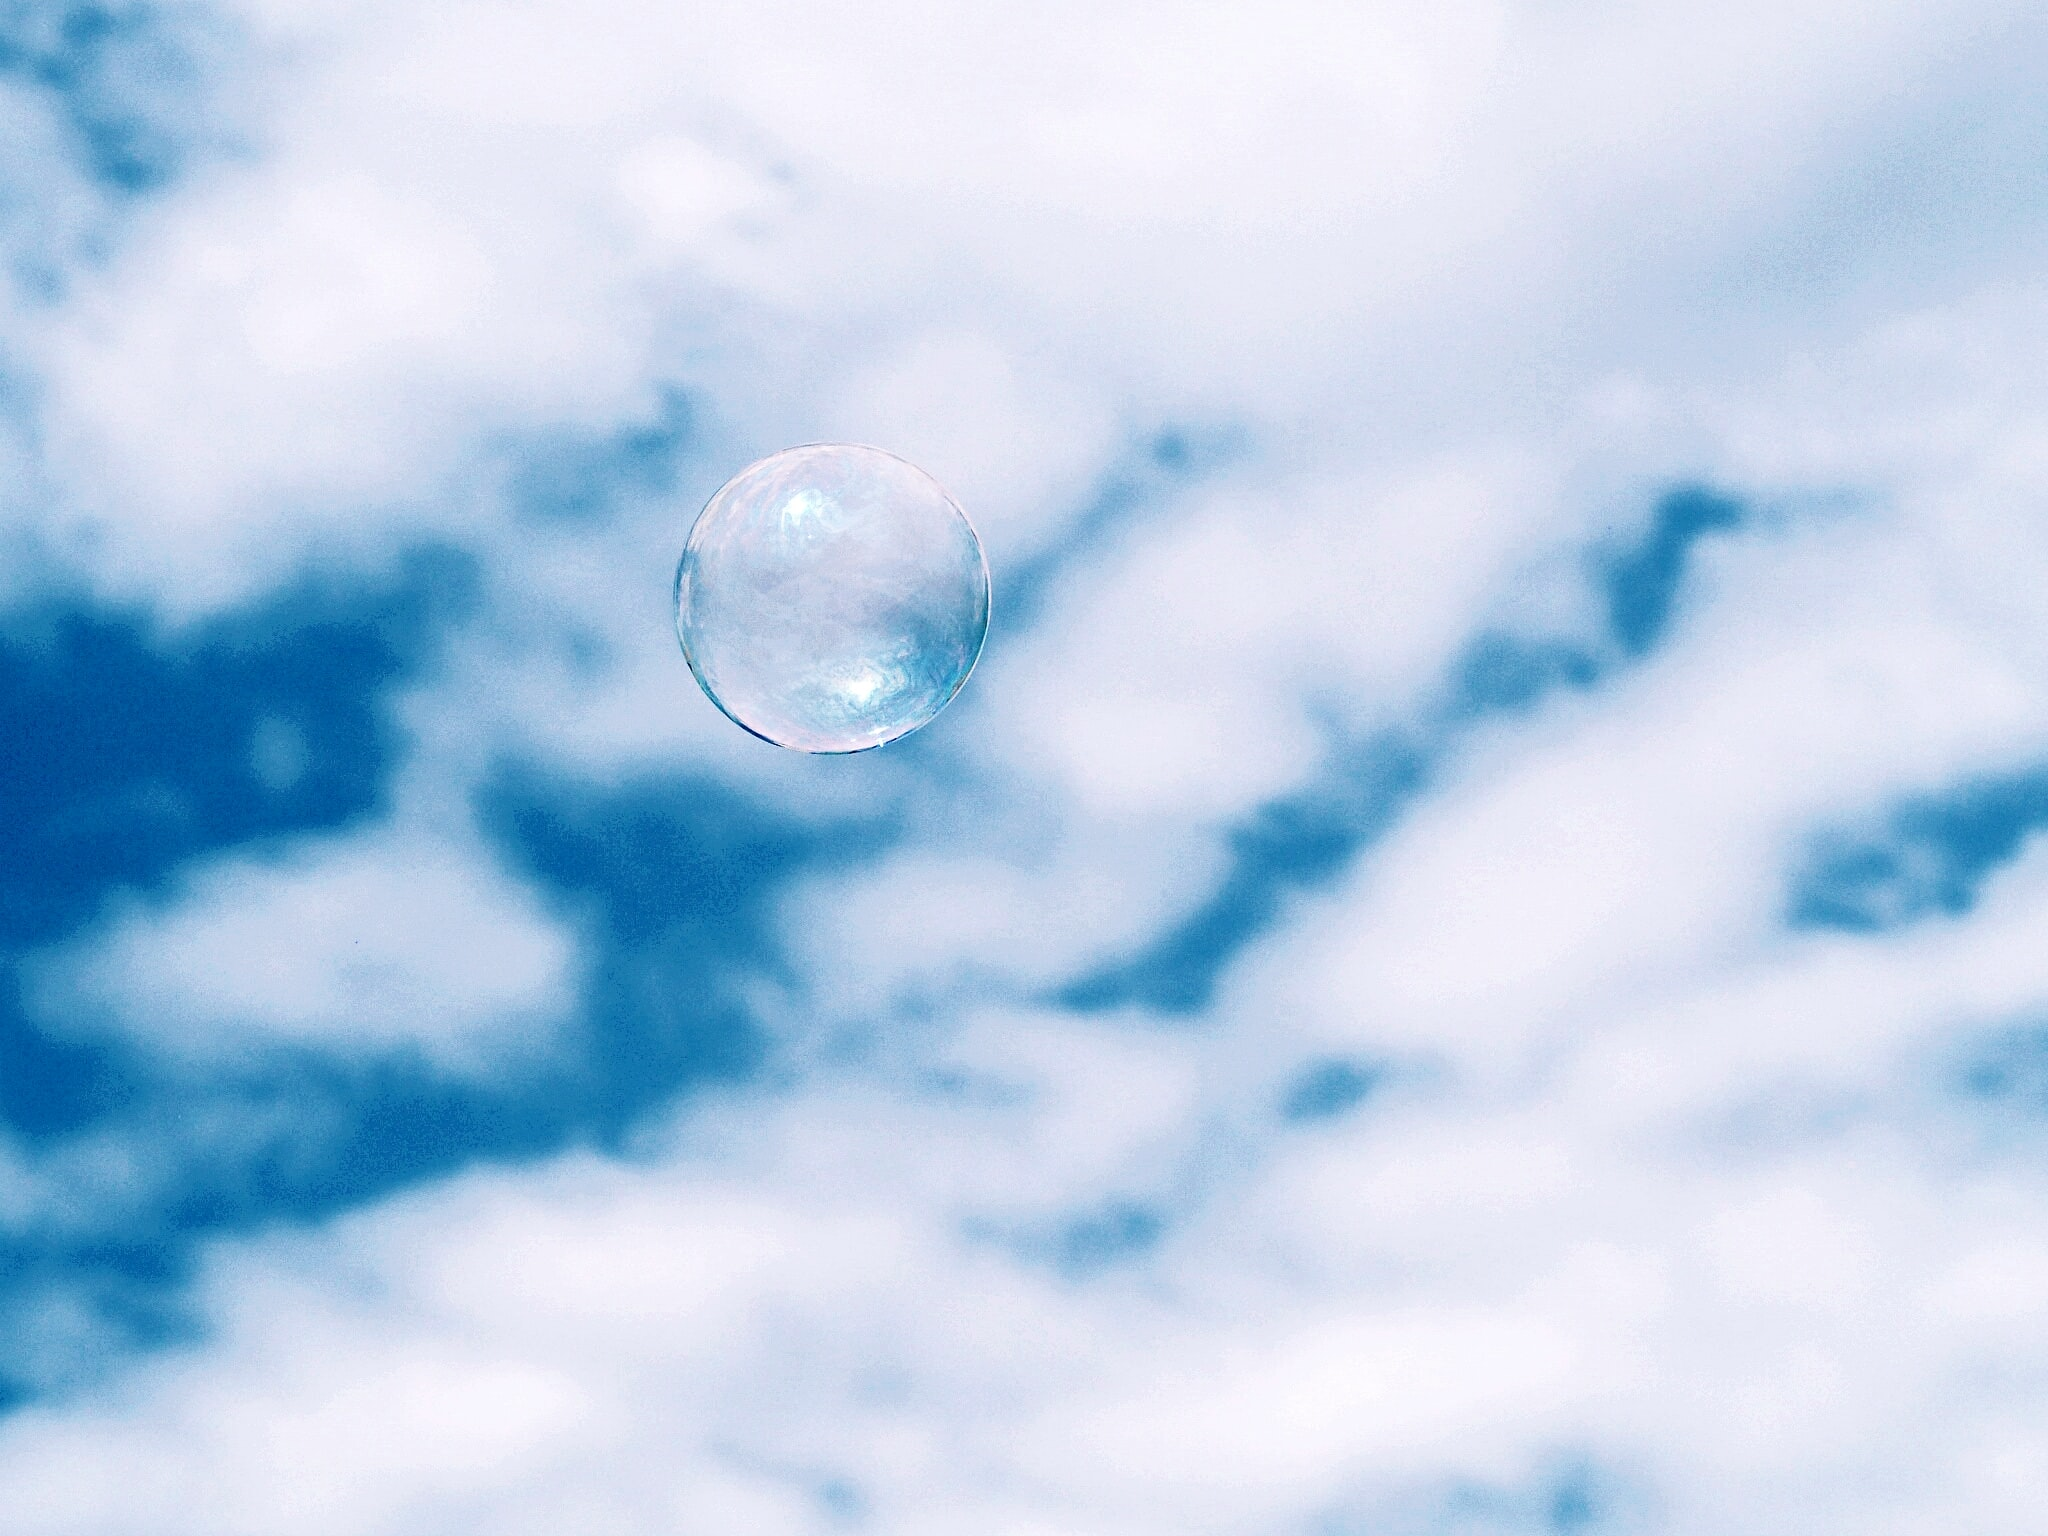 bubble under white clouds at daytime